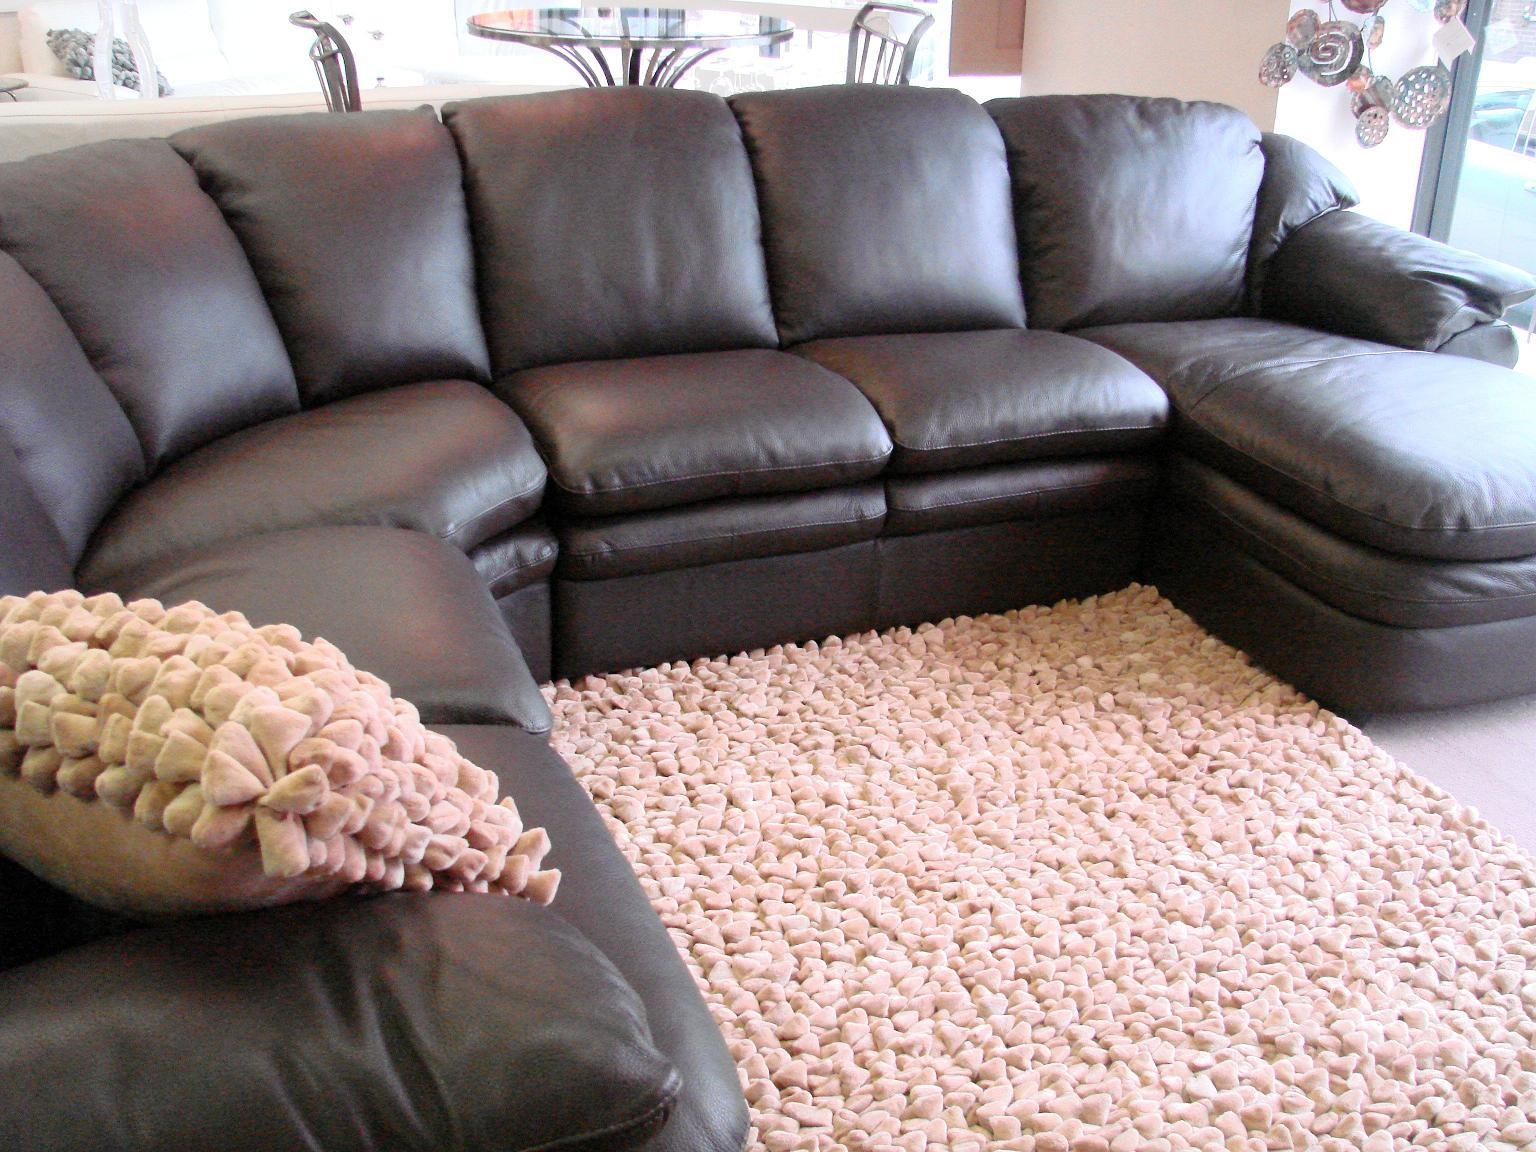 Sofa & Couch: Curved Sectional Sofa | Amazon Couches | Sectional Pertaining To Leather Sofa Sectionals For Sale (View 2 of 20)